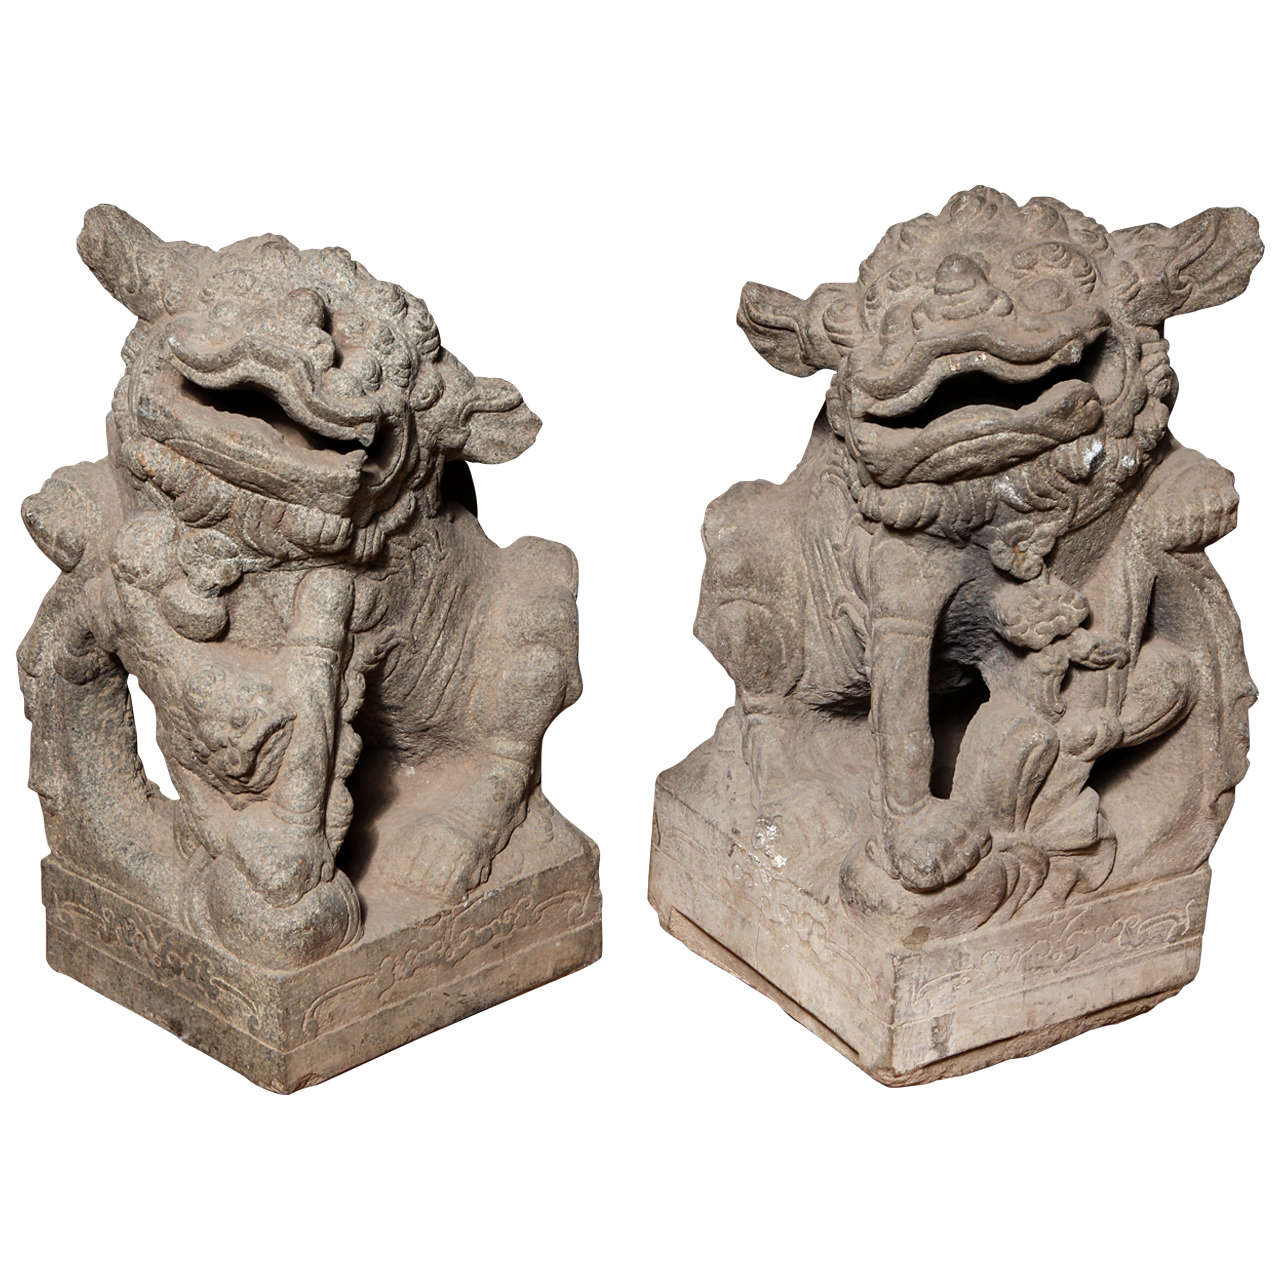 Chinese Pair of Stone Guardian Foo Dogs/Guardian Lions from 18th Century